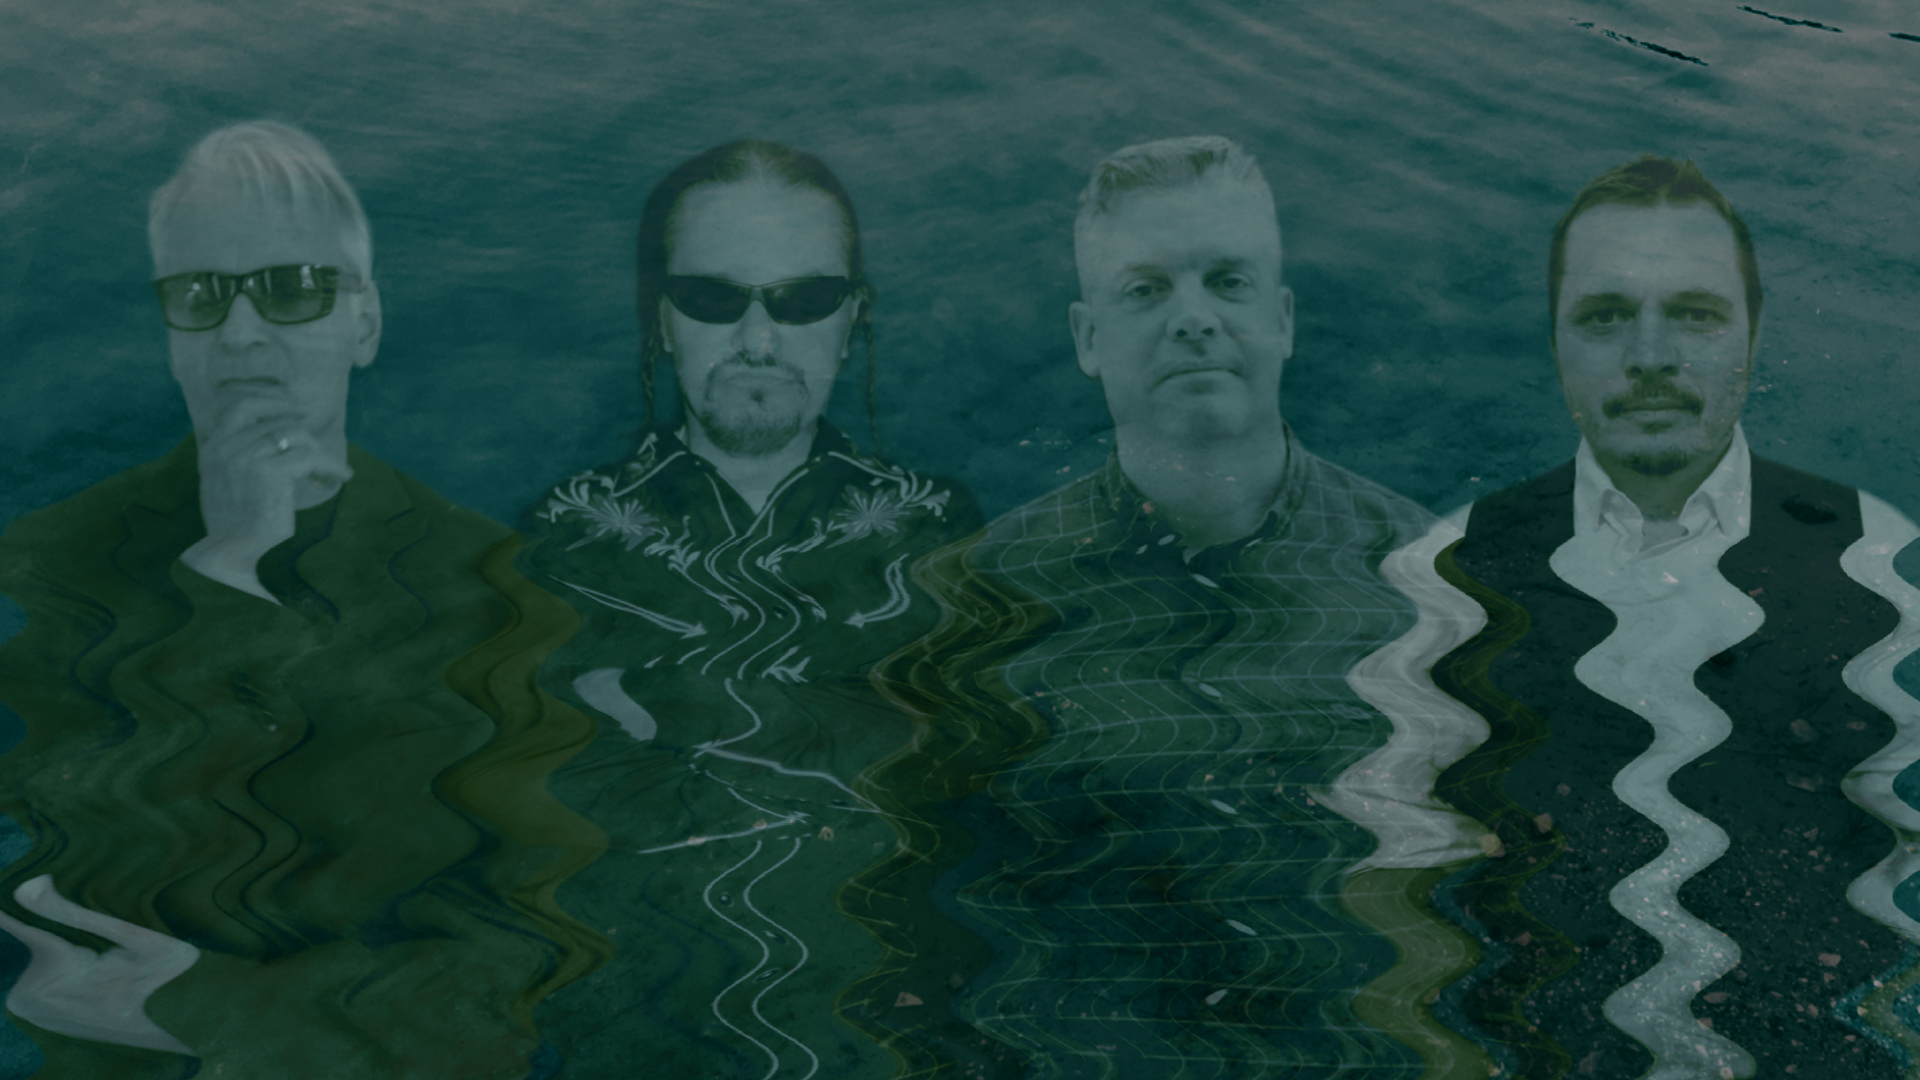 Tomahawk | New Album 'Tonic Immobility' Out Now